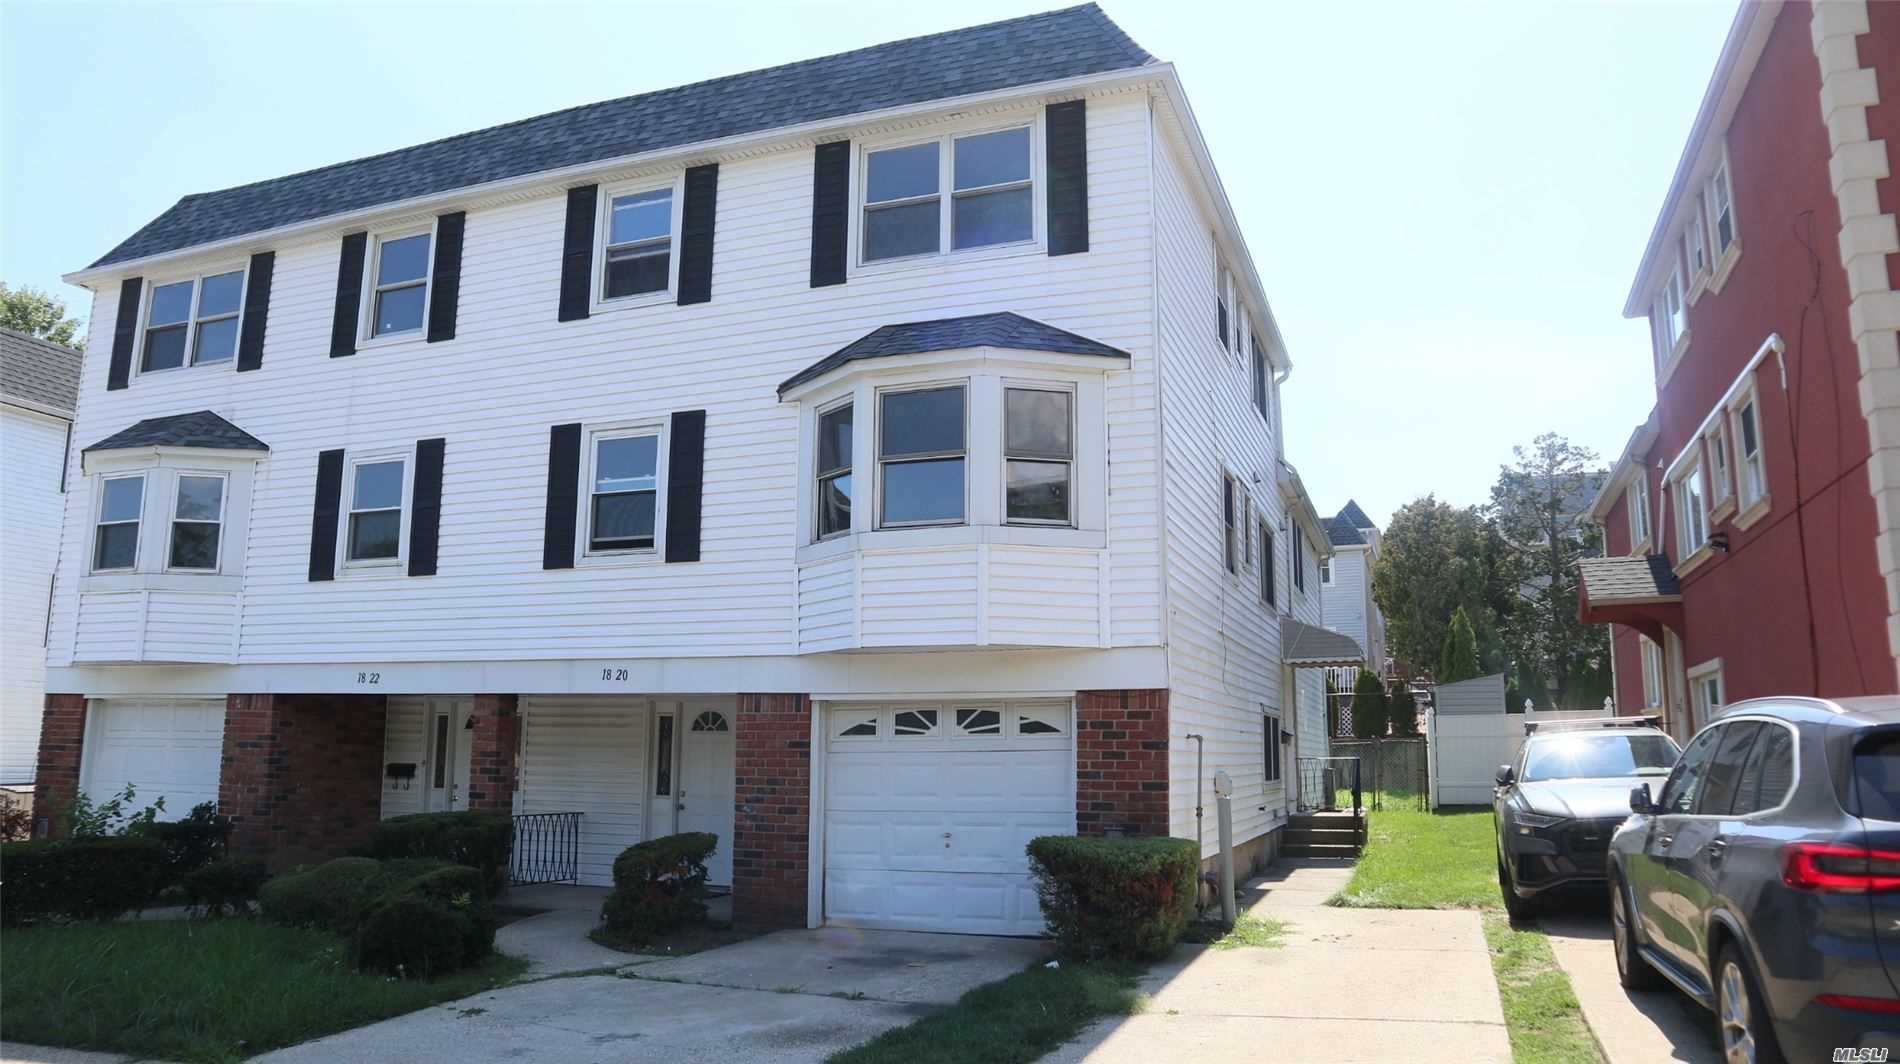 Property for sale at 18-20 215 Street, Bayside,  New York 11360